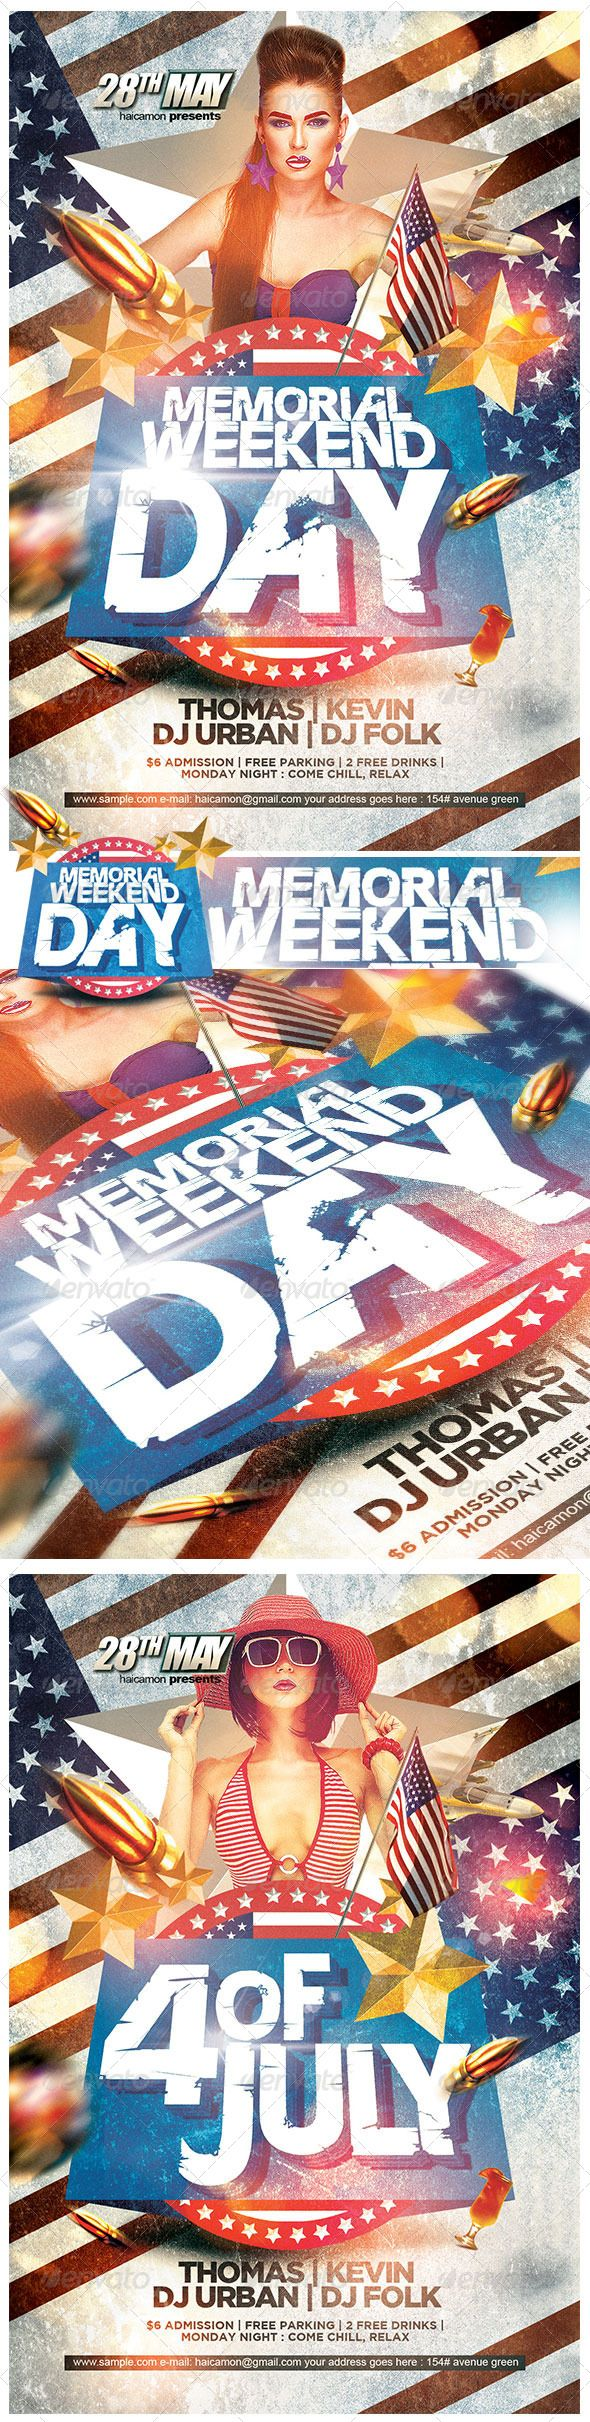 labor day weekend parties flyers ecza productoseb co